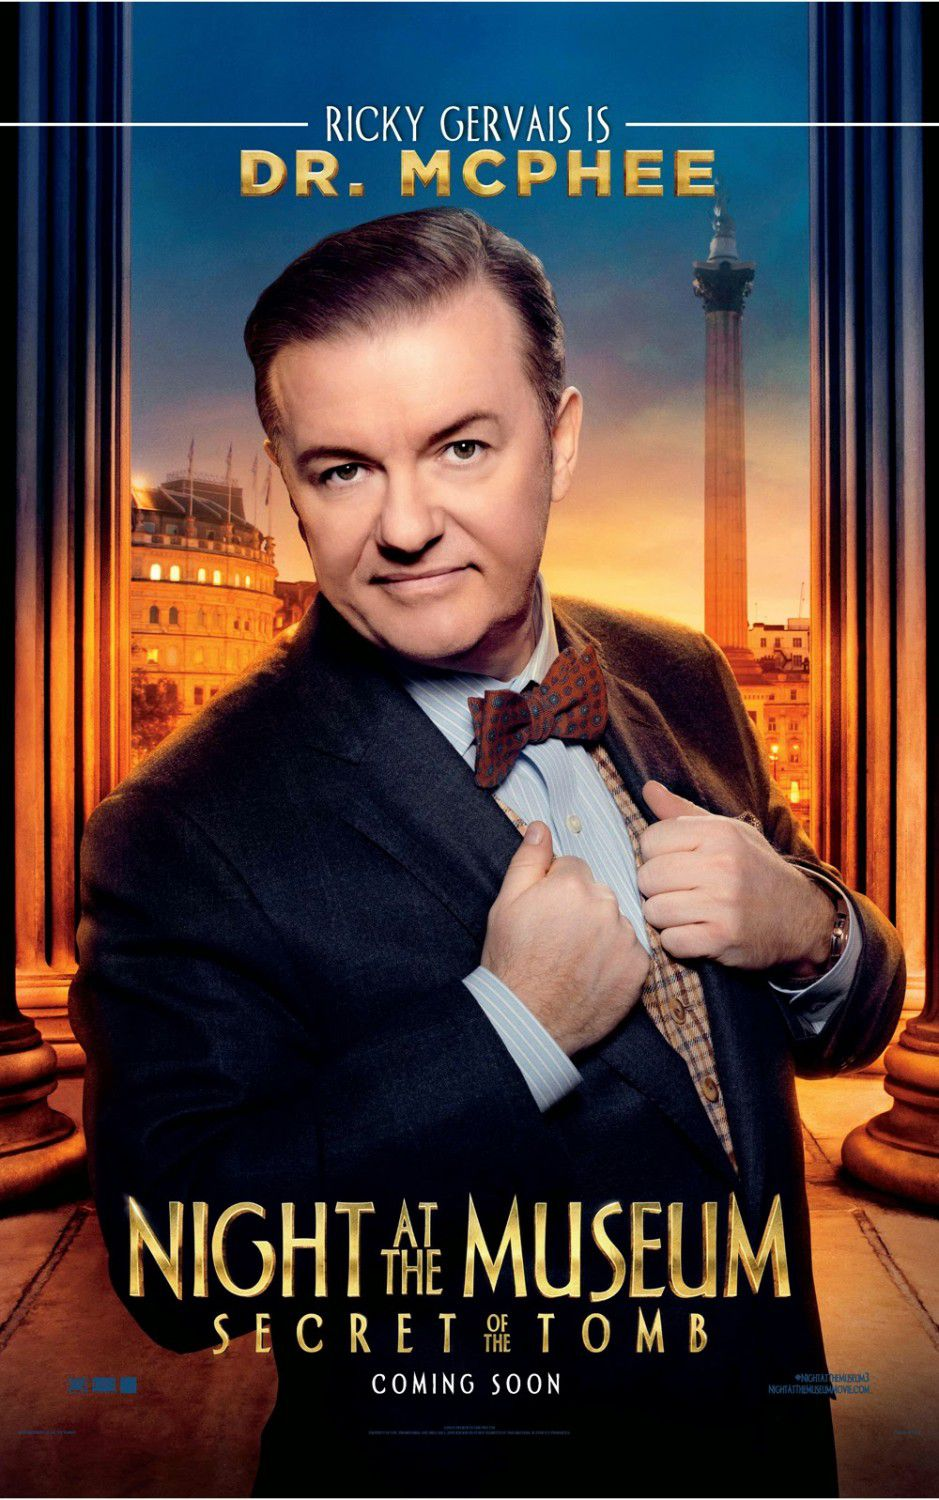 Una Notte al Museo 3 - Night at the Museum 3 - Secret of the Tomb - poster - Dr. McPhee (Ricky Gervais)